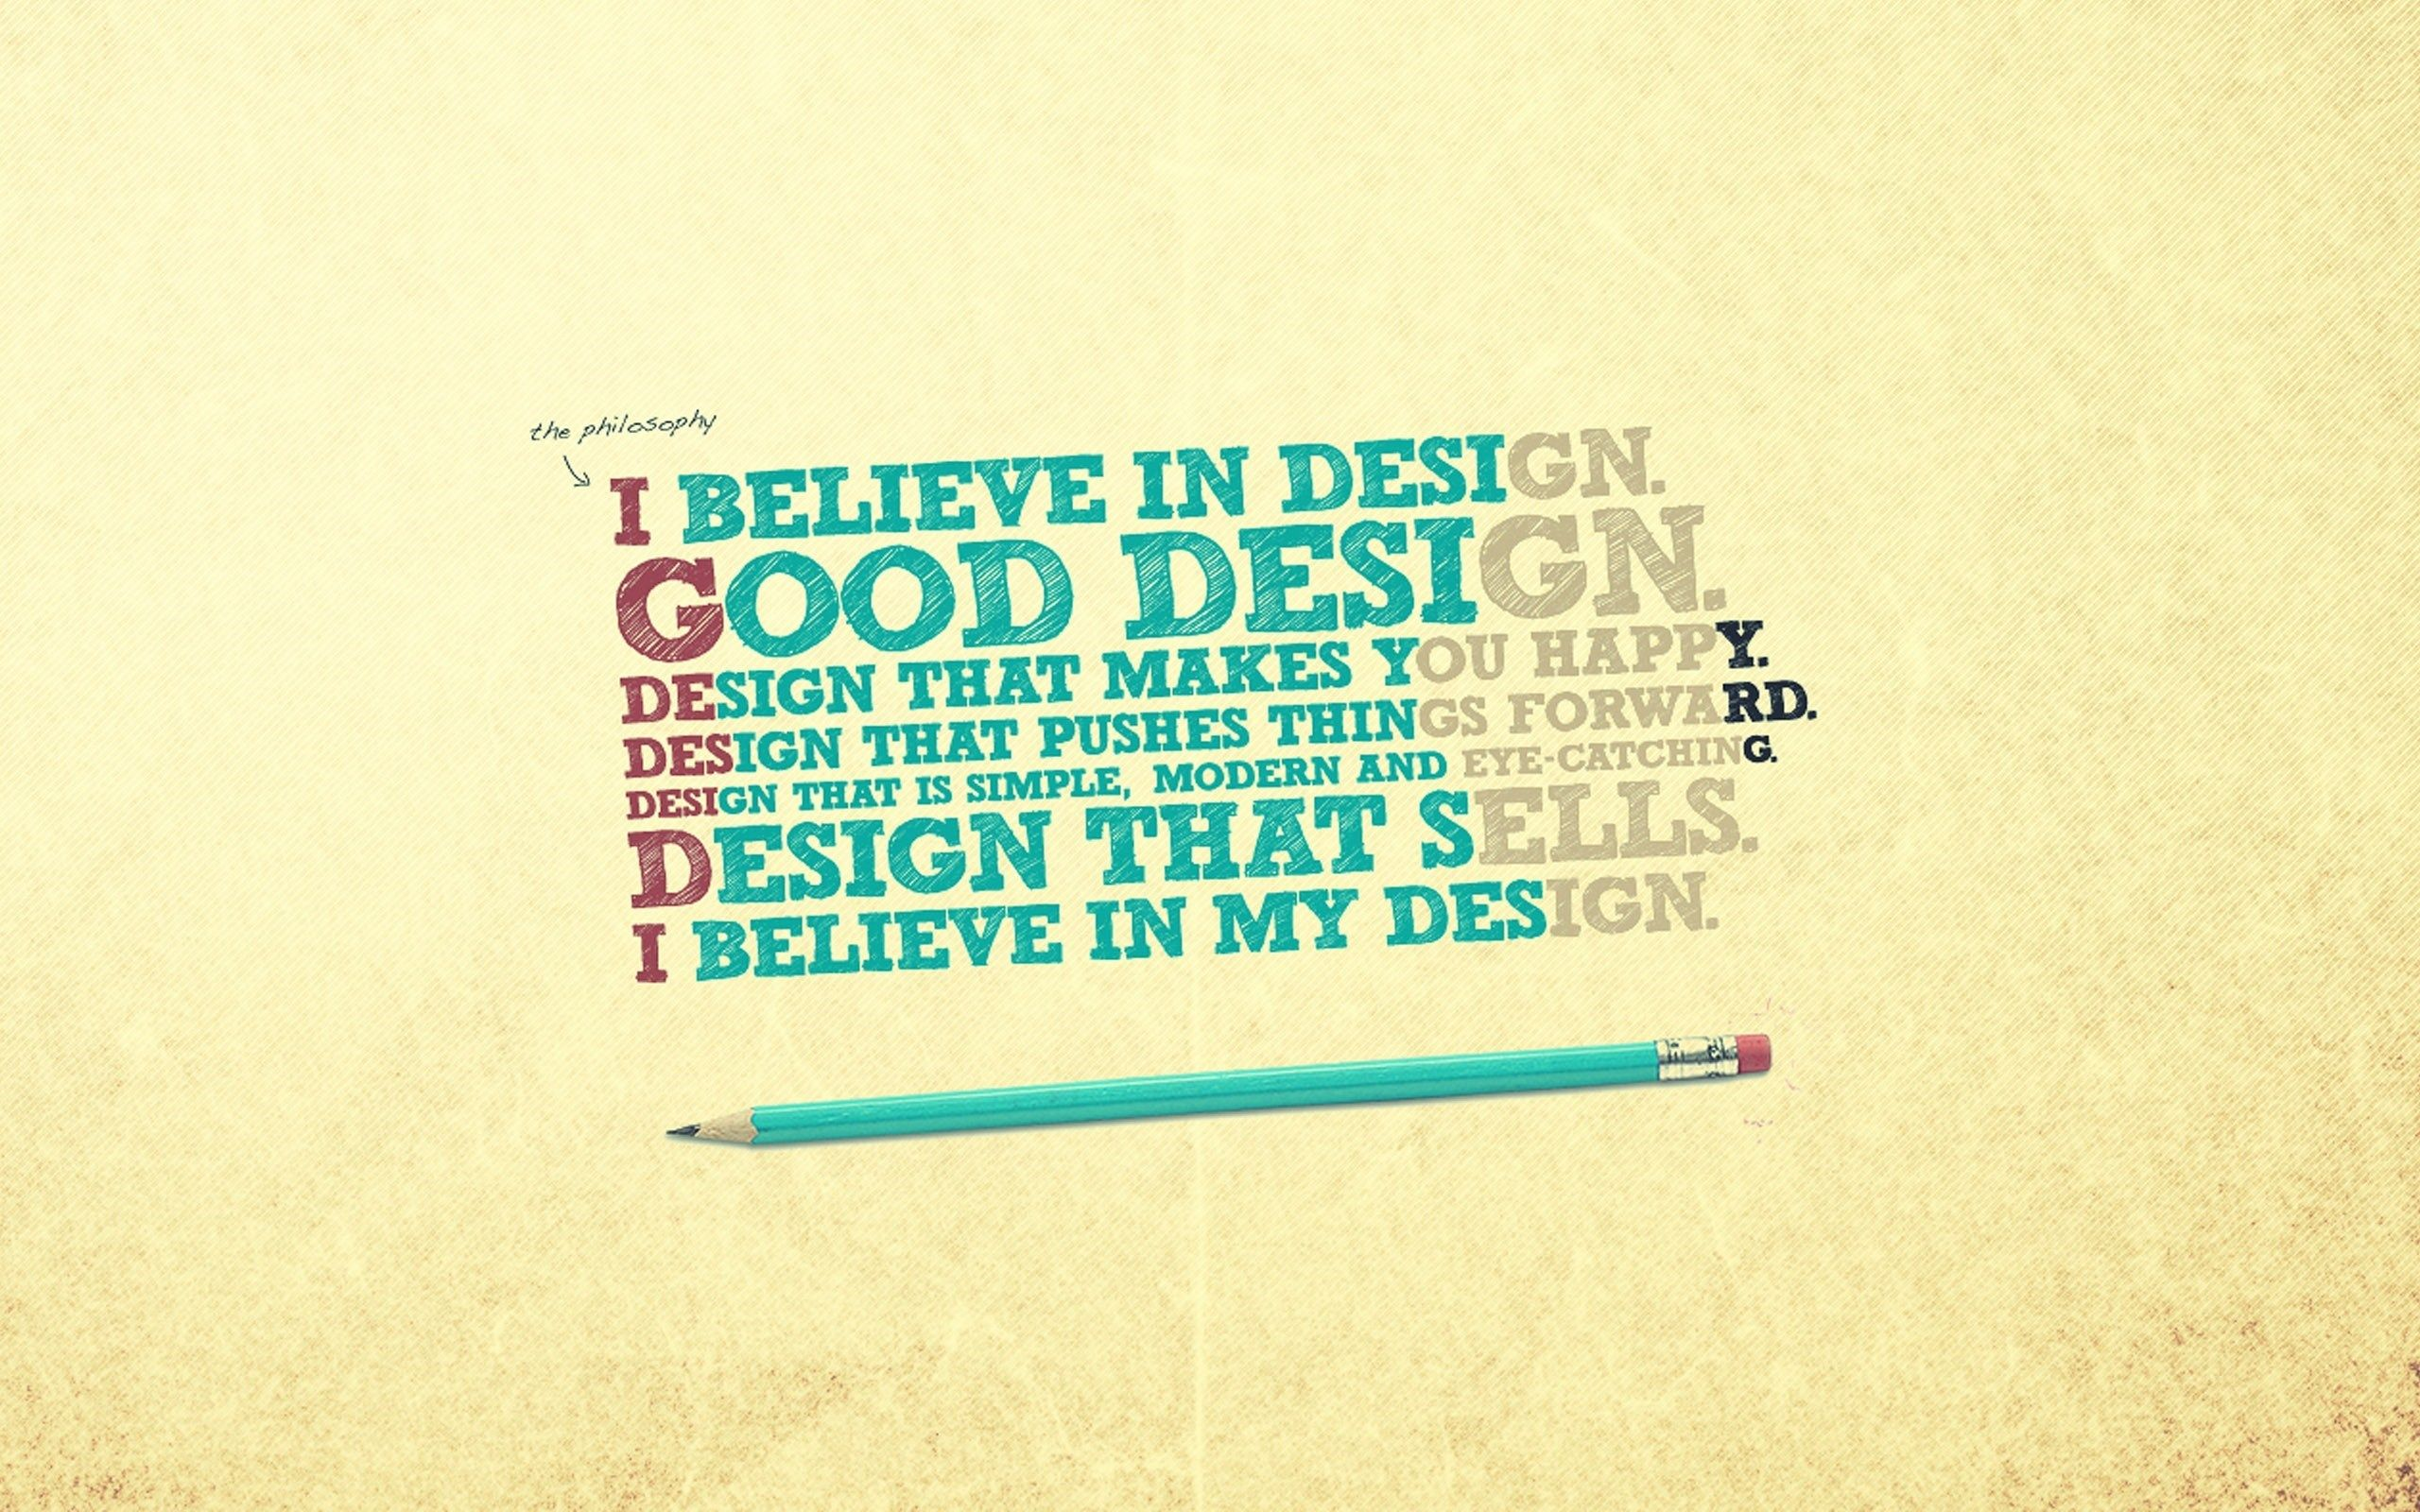 graphic design typography font hd wallpaper pencil quote